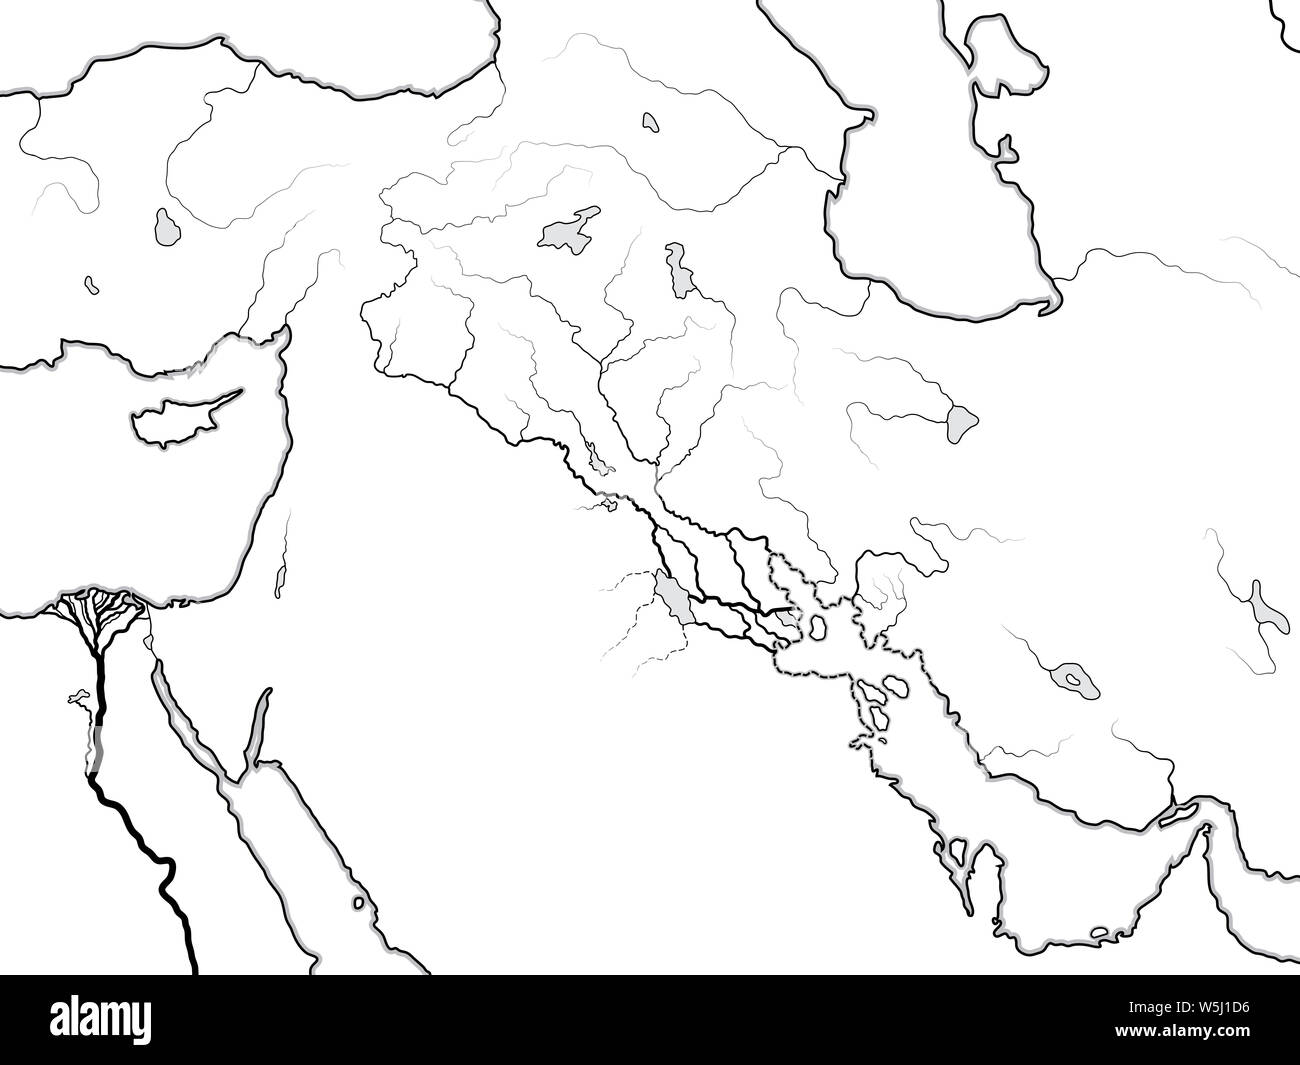 Blank Map Of Ancient Mesopotamia And Egypt